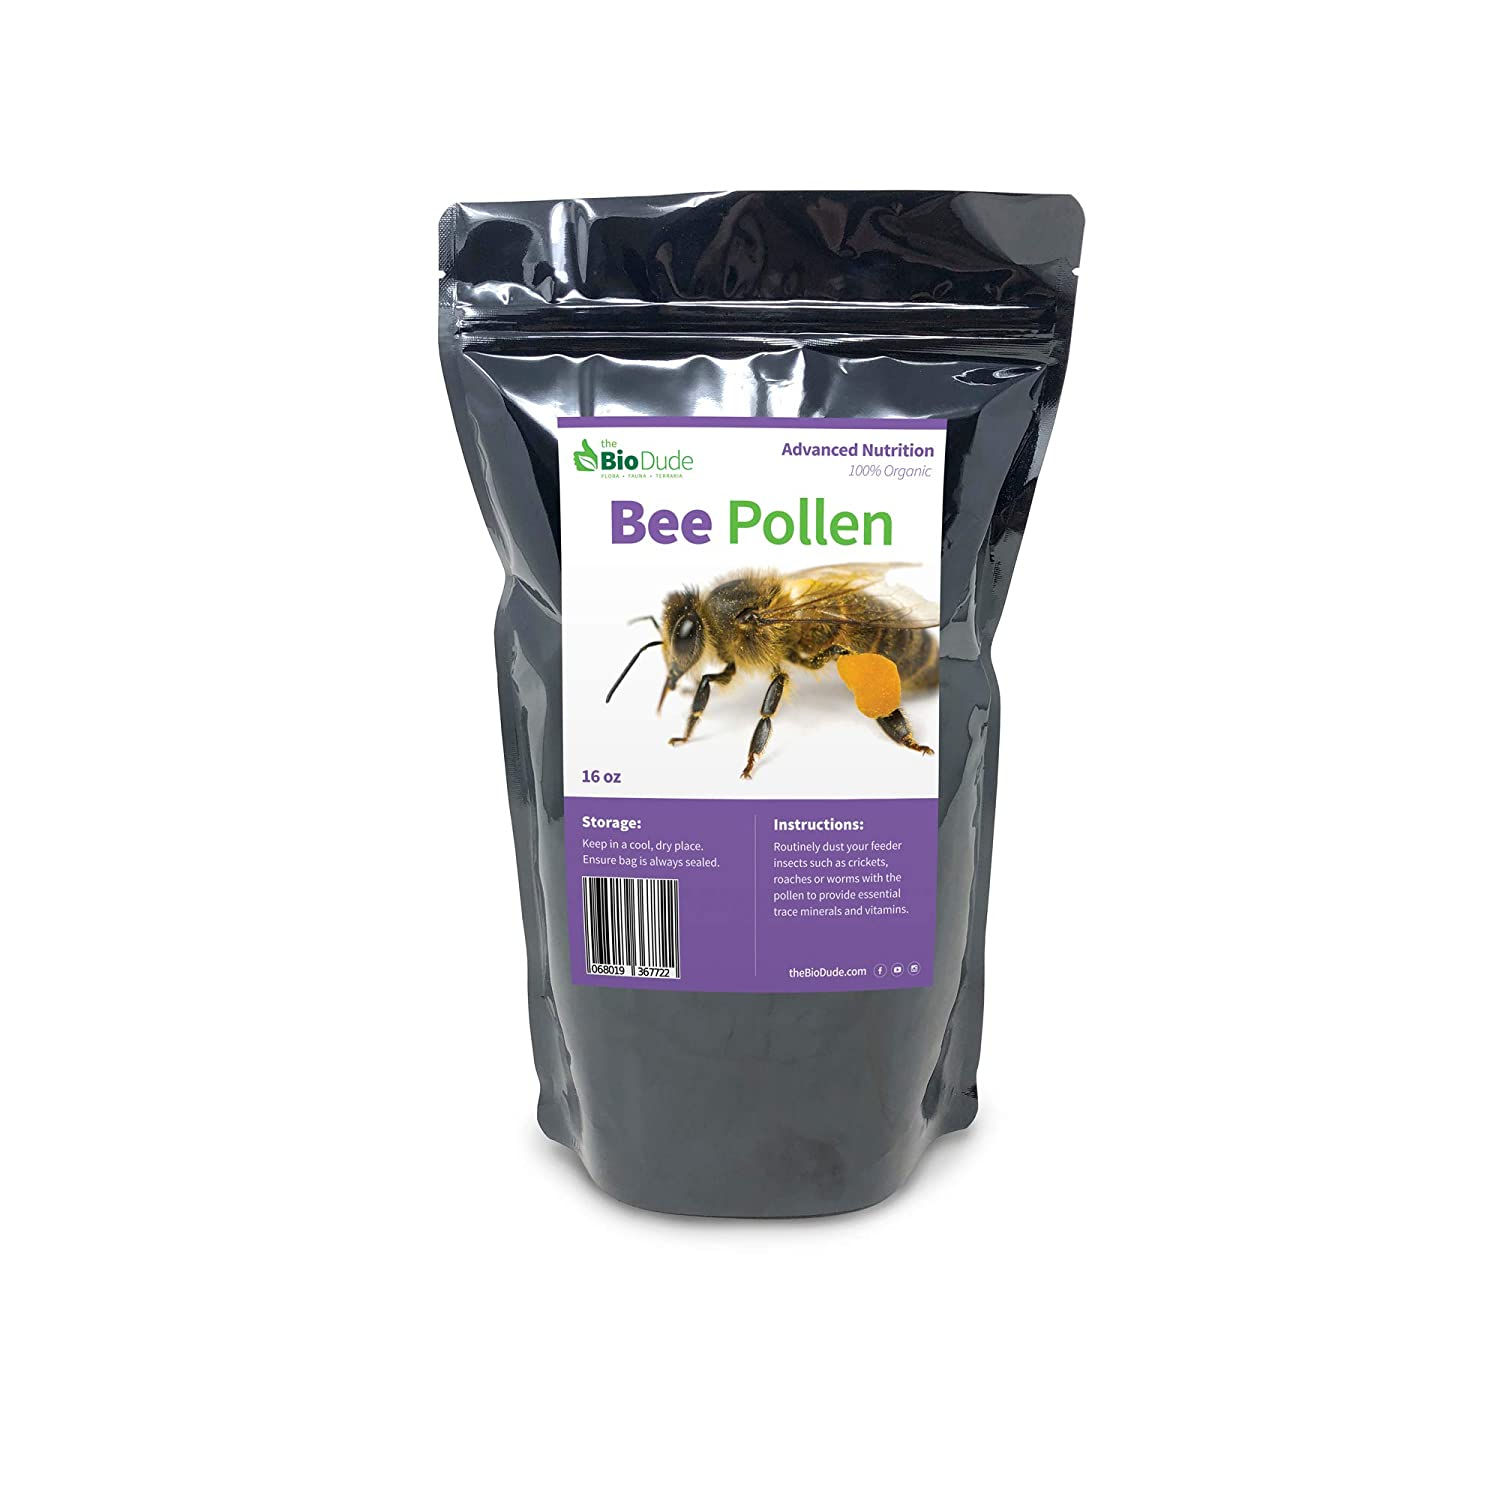 The Bio Dude Bee Pollen 1 LB High in Vitamins, Minerals for Bearded Dragons, Tortoises and Lizards